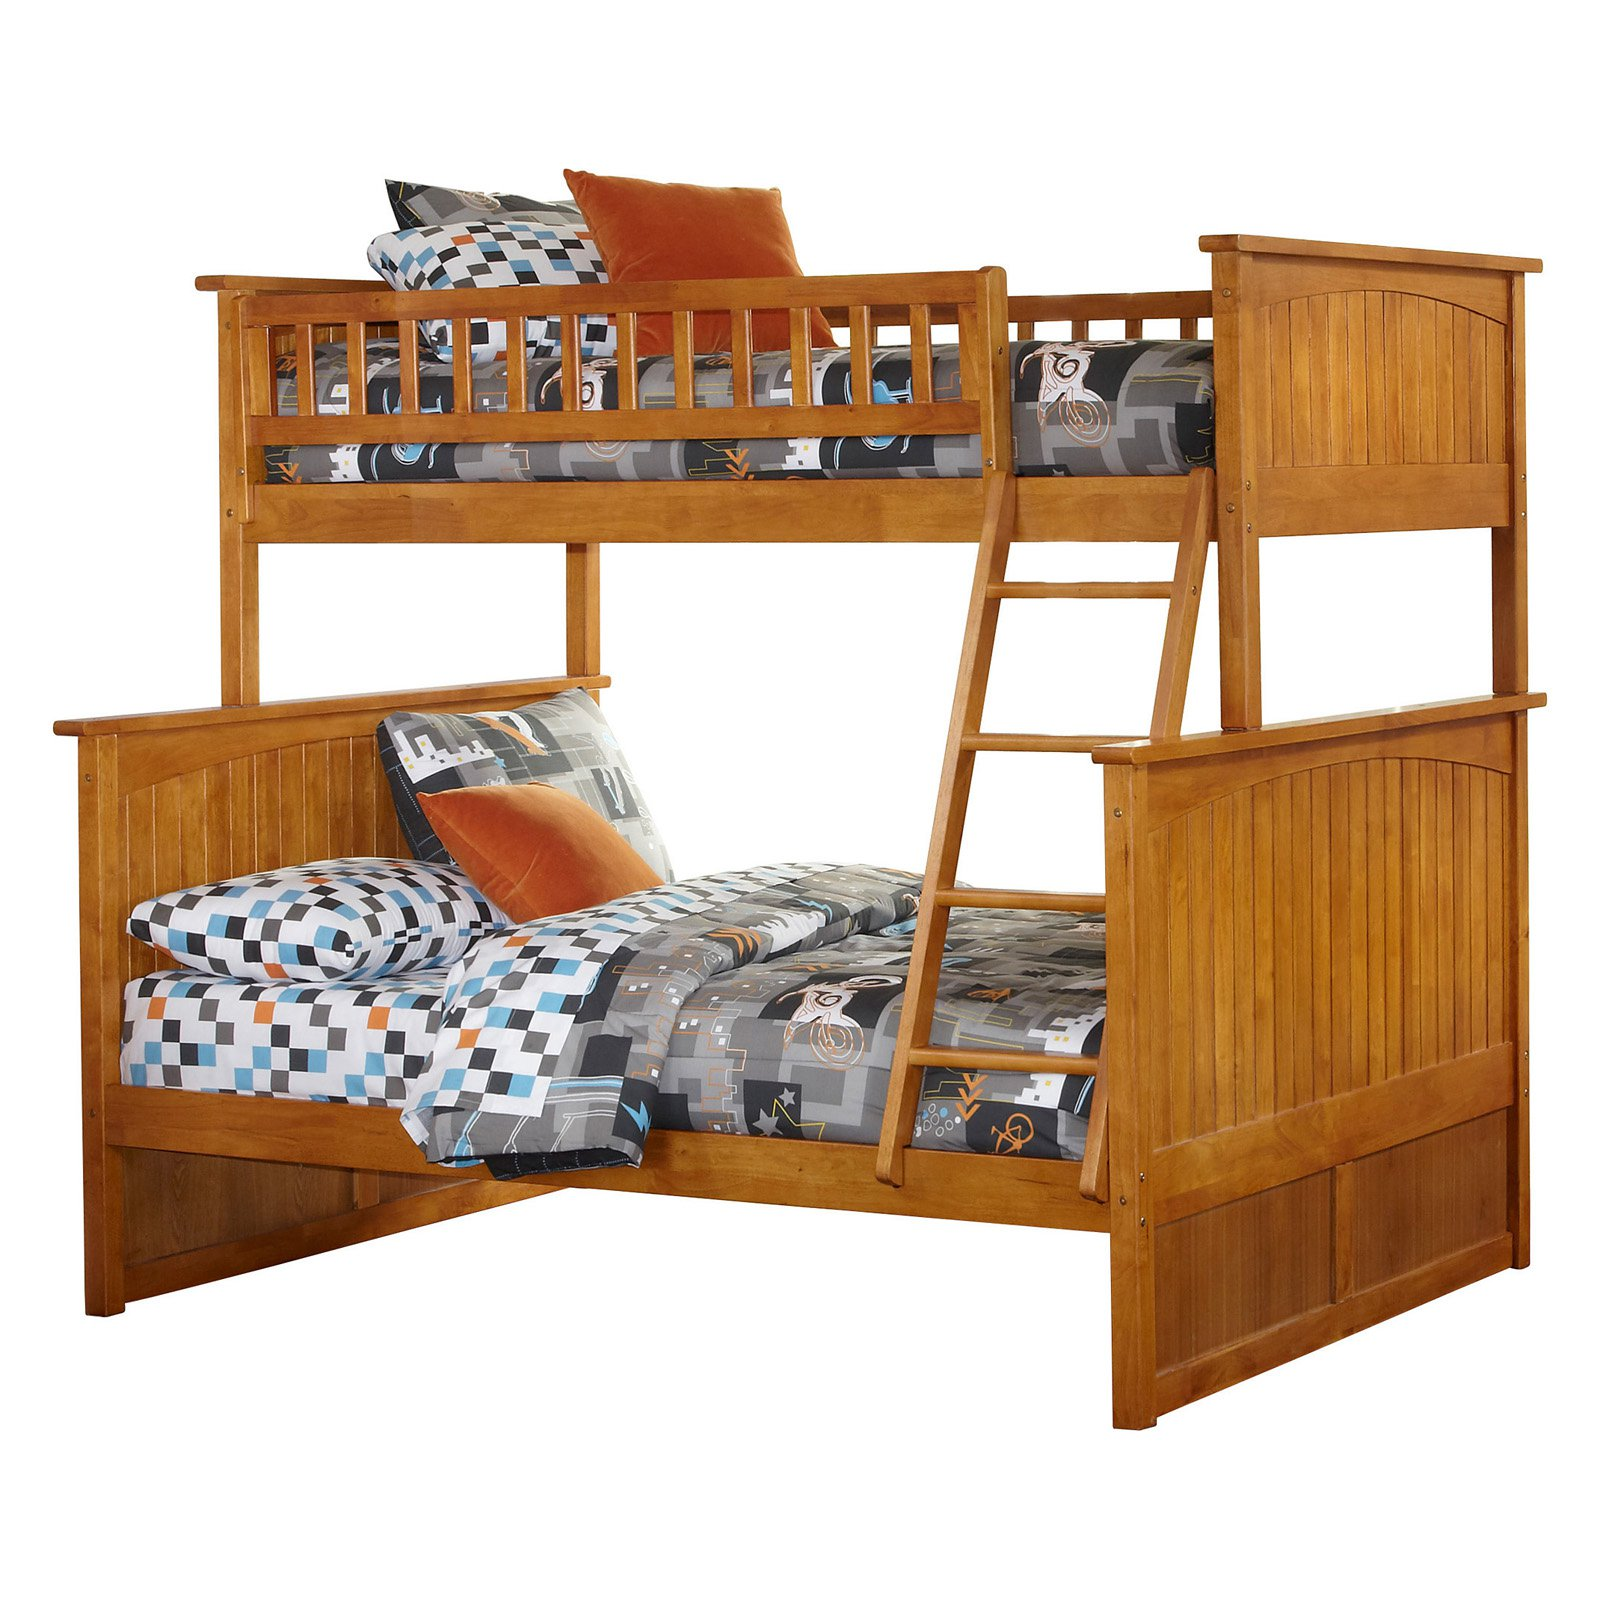 80.5 in. Twin Over Full Bunk Bed with Raised Panel Trundle